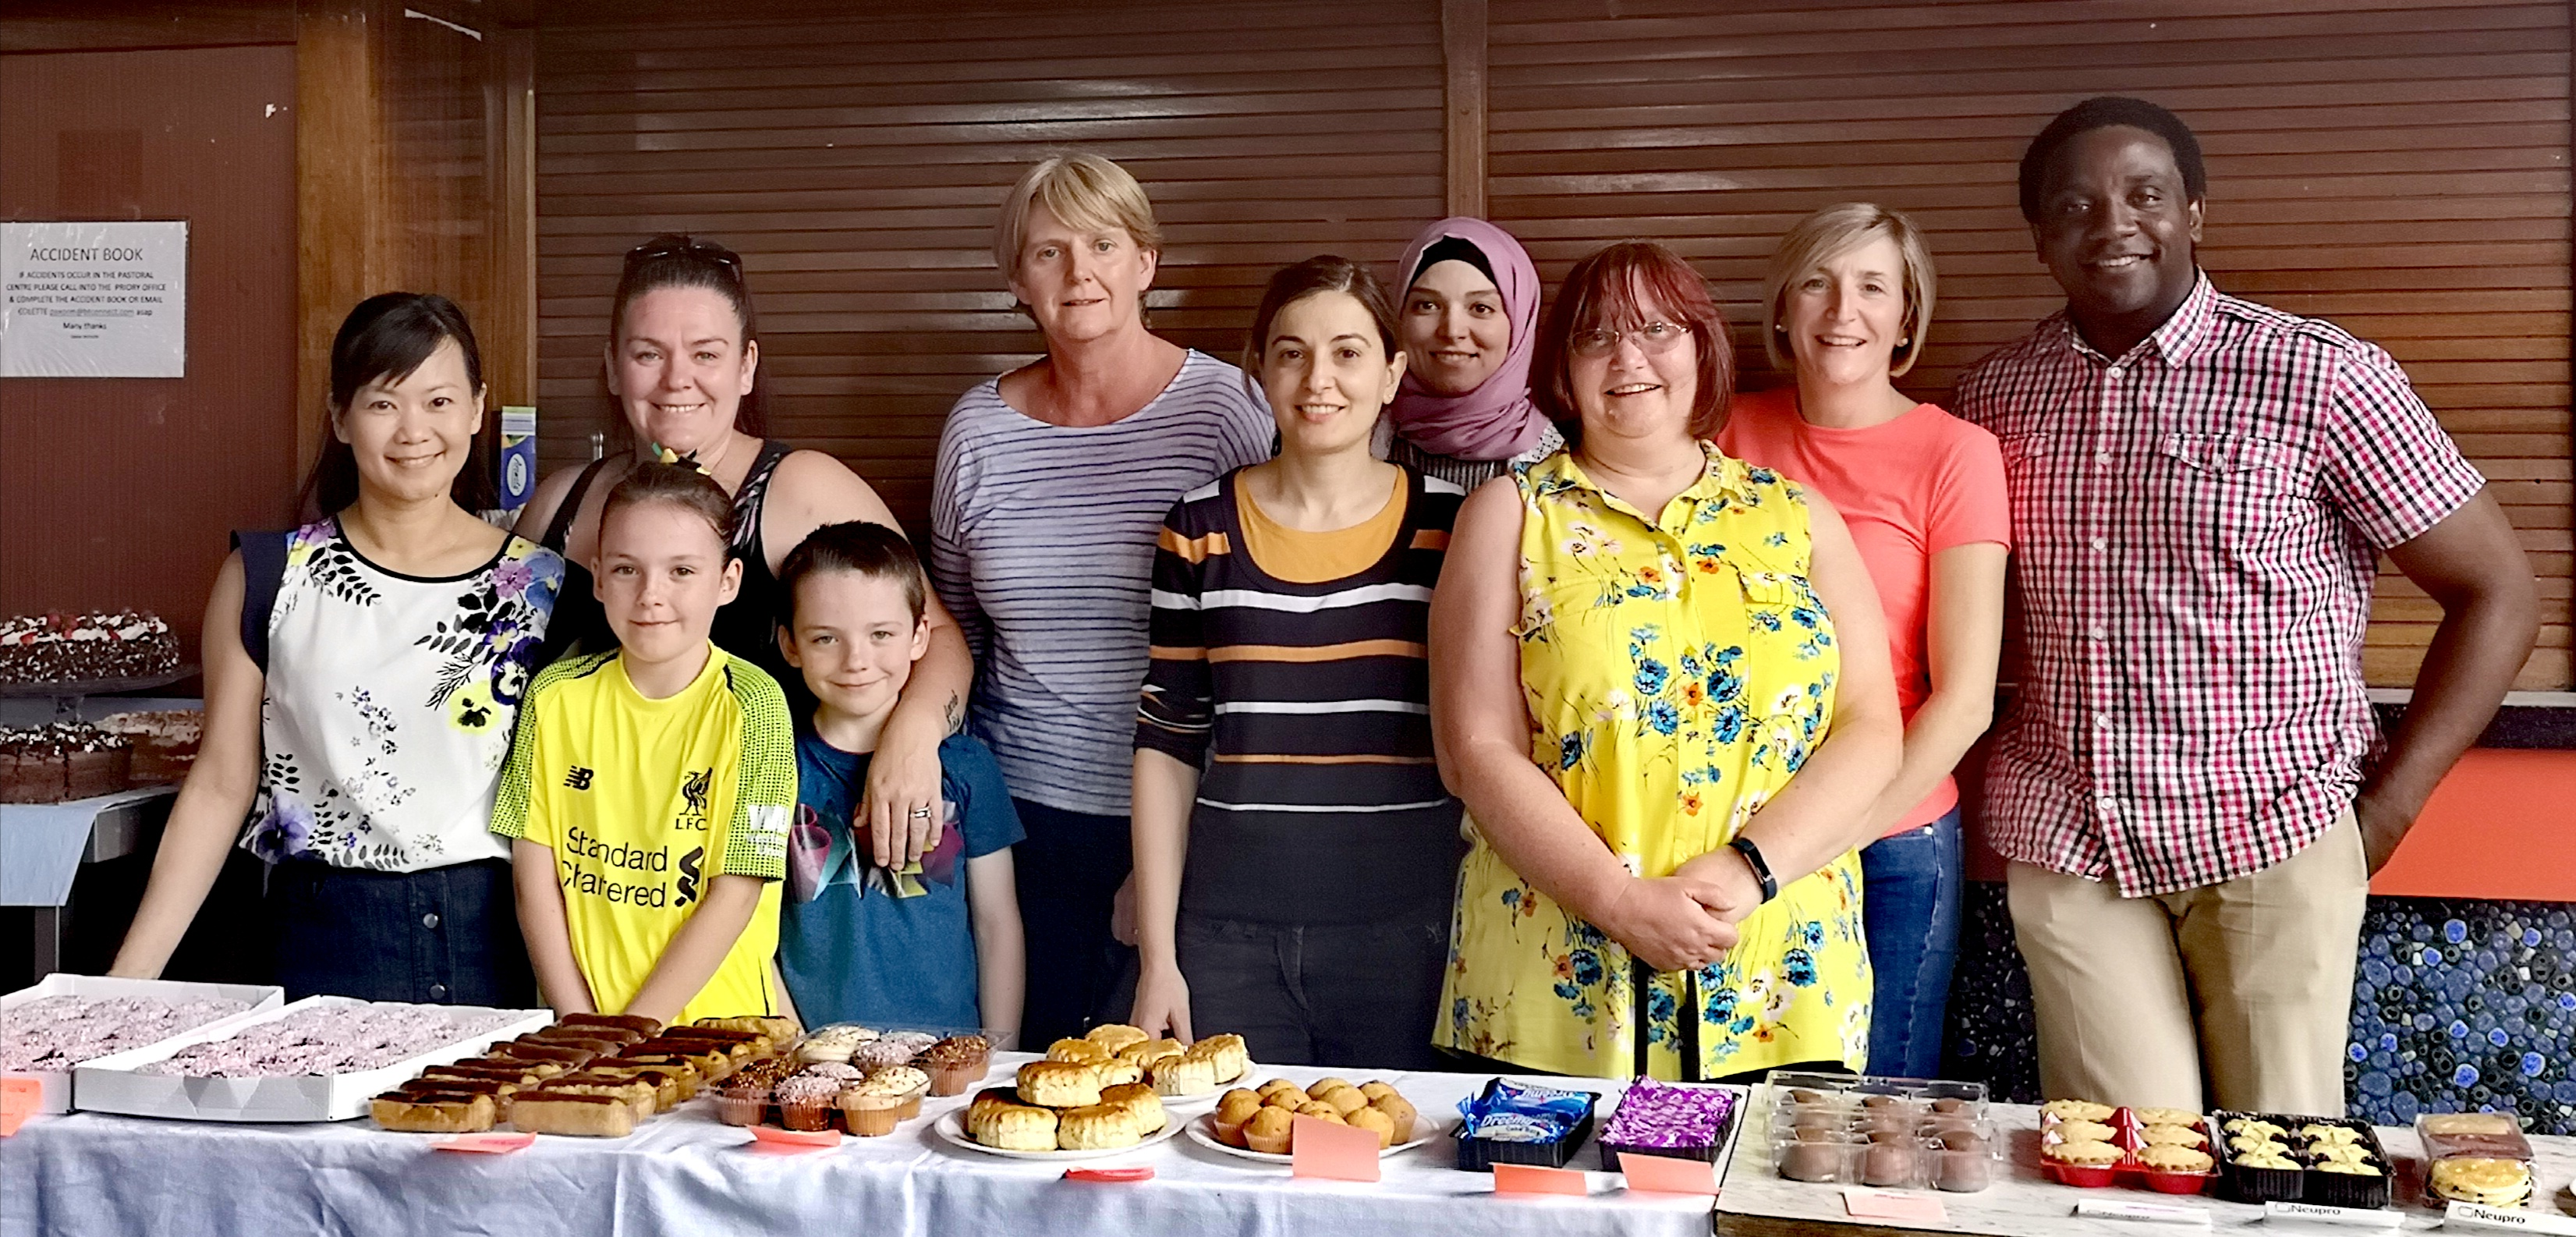 , Family fun day for diabetes patients and families, Skem News - The Top Source for Skelmersdale News